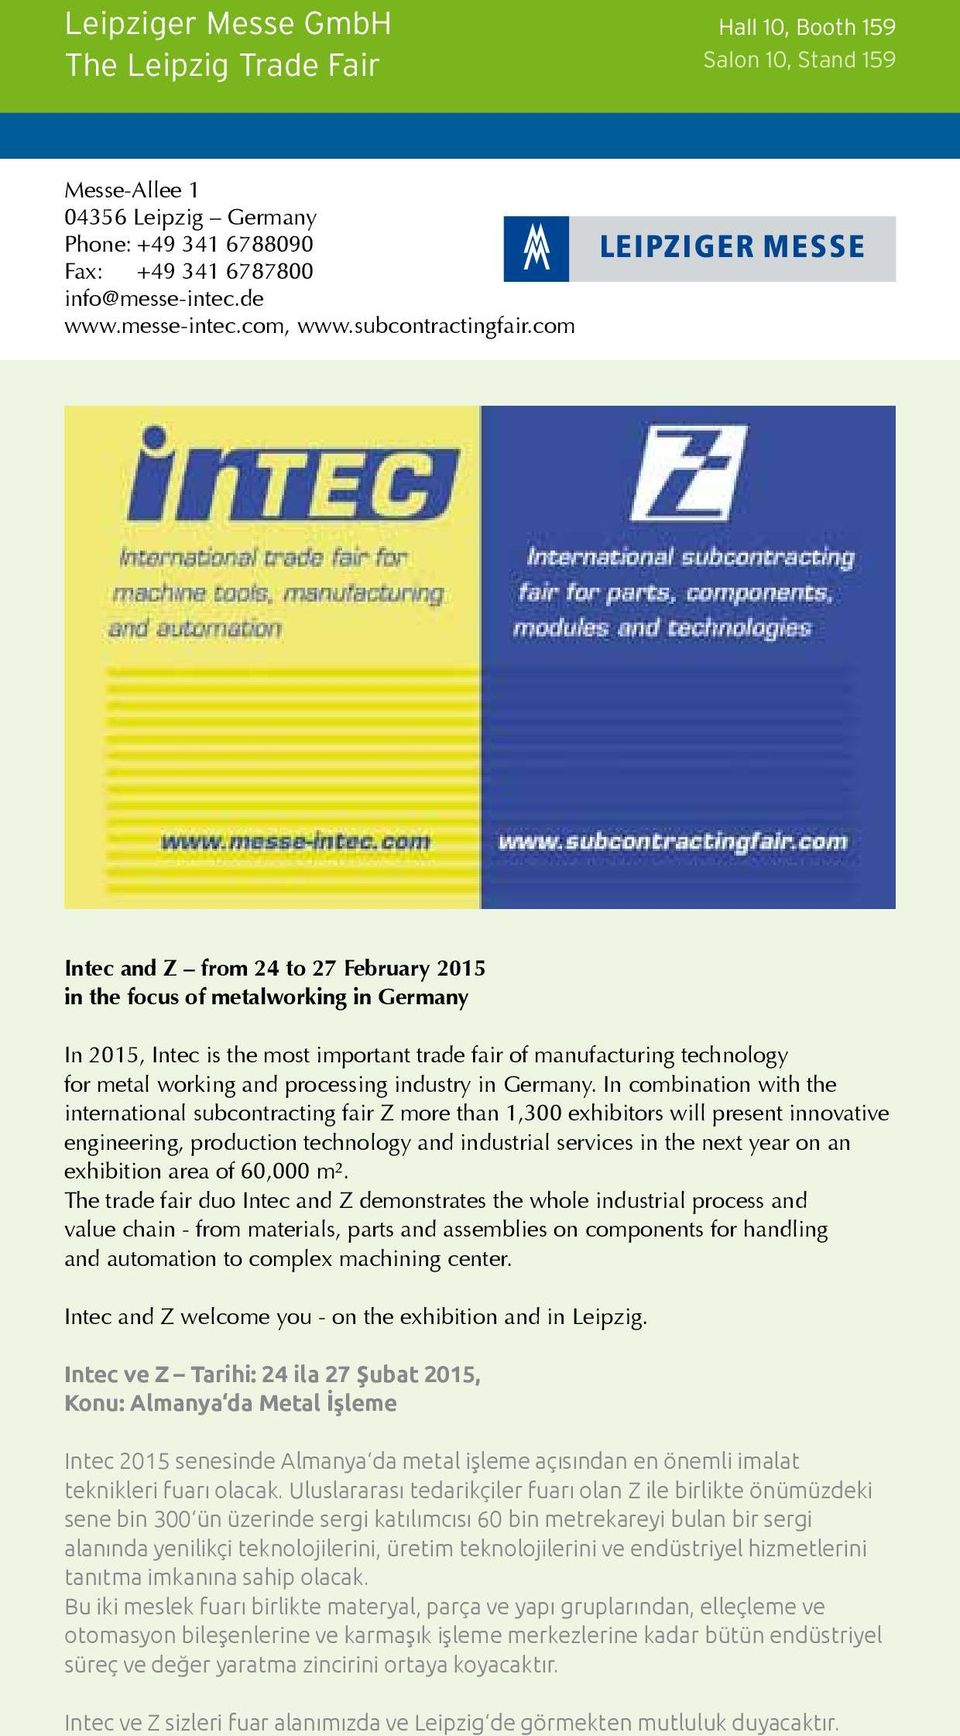 com Intec and Z from 24 to 27 February 2015 in the focus of metalworking in Germany In 2015, Intec is the most important trade fair of manufacturing technology for metal working and processing